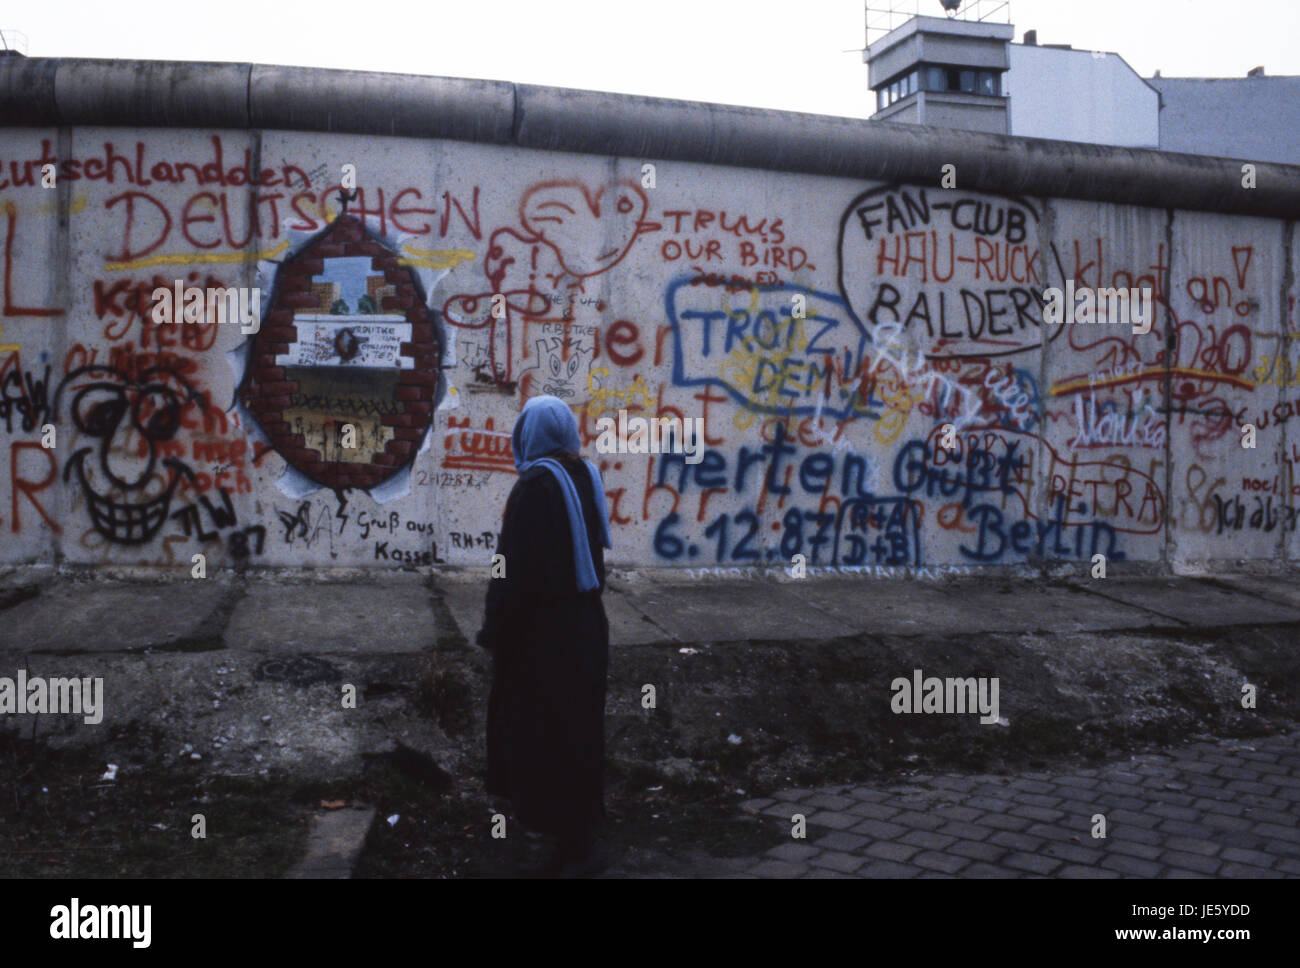 Una signora legge i graffiti sul muro di Berlino, mentre Germania Est guardie di confine a guardare. Berlin 1987 Foto Stock